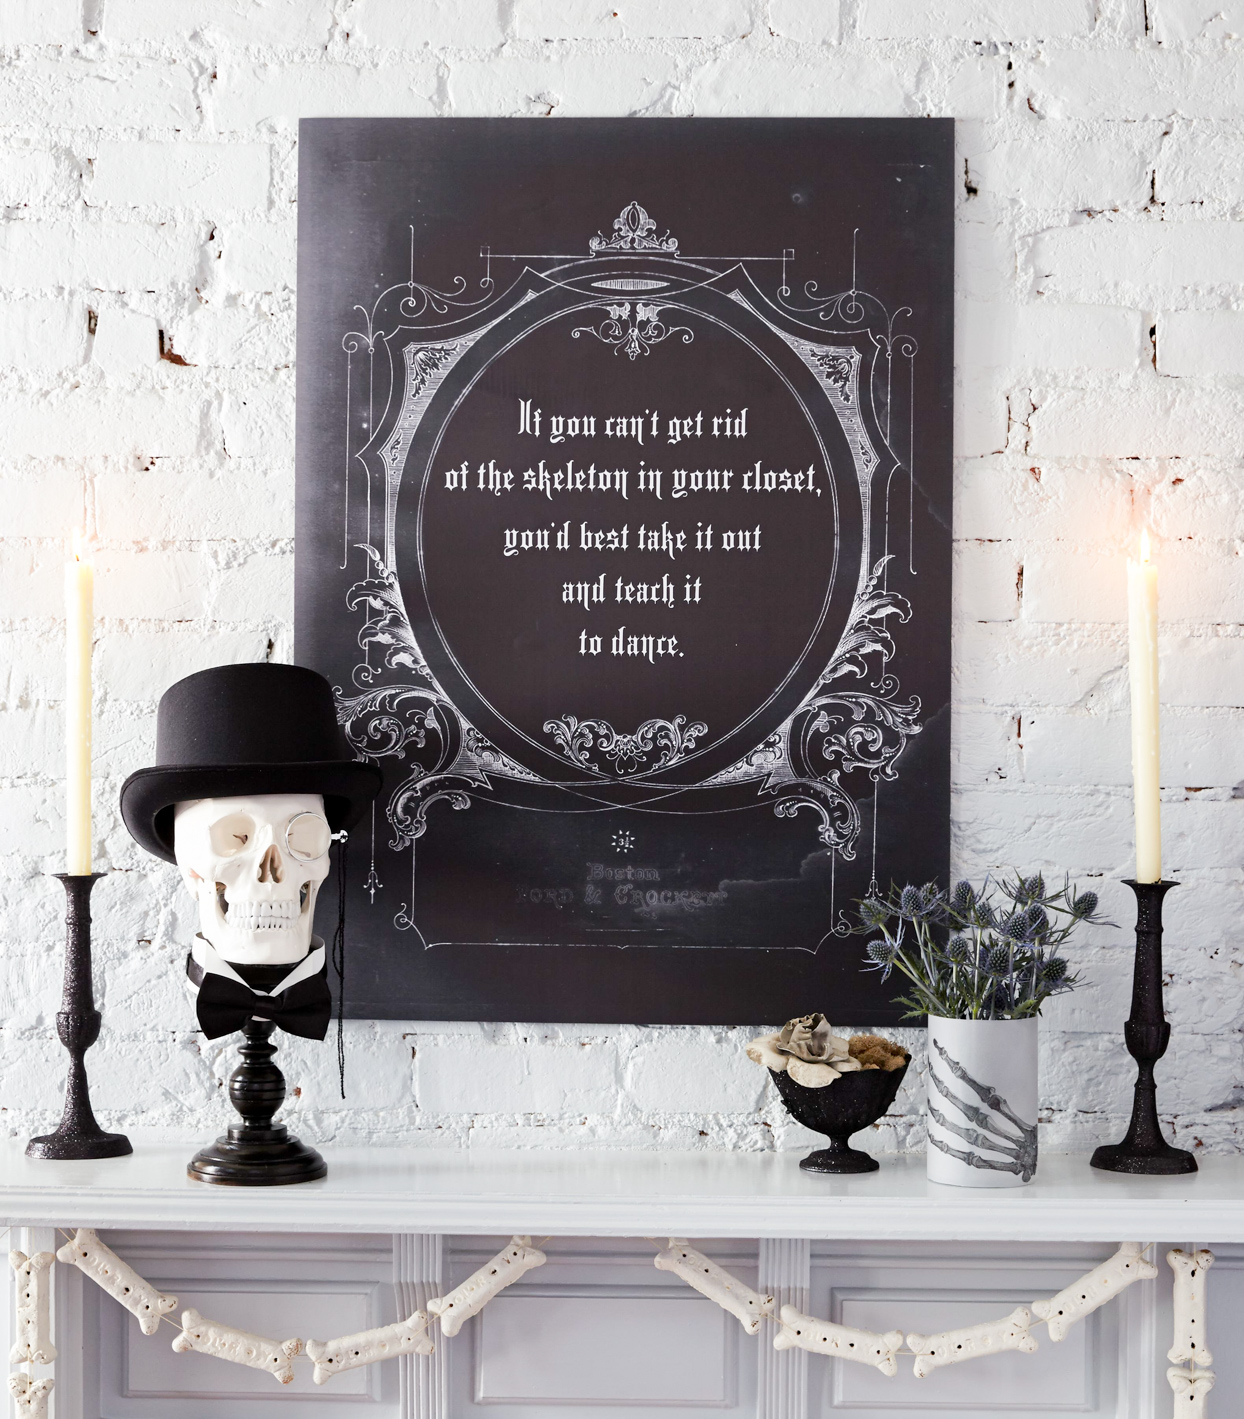 Black-and-White Mantel